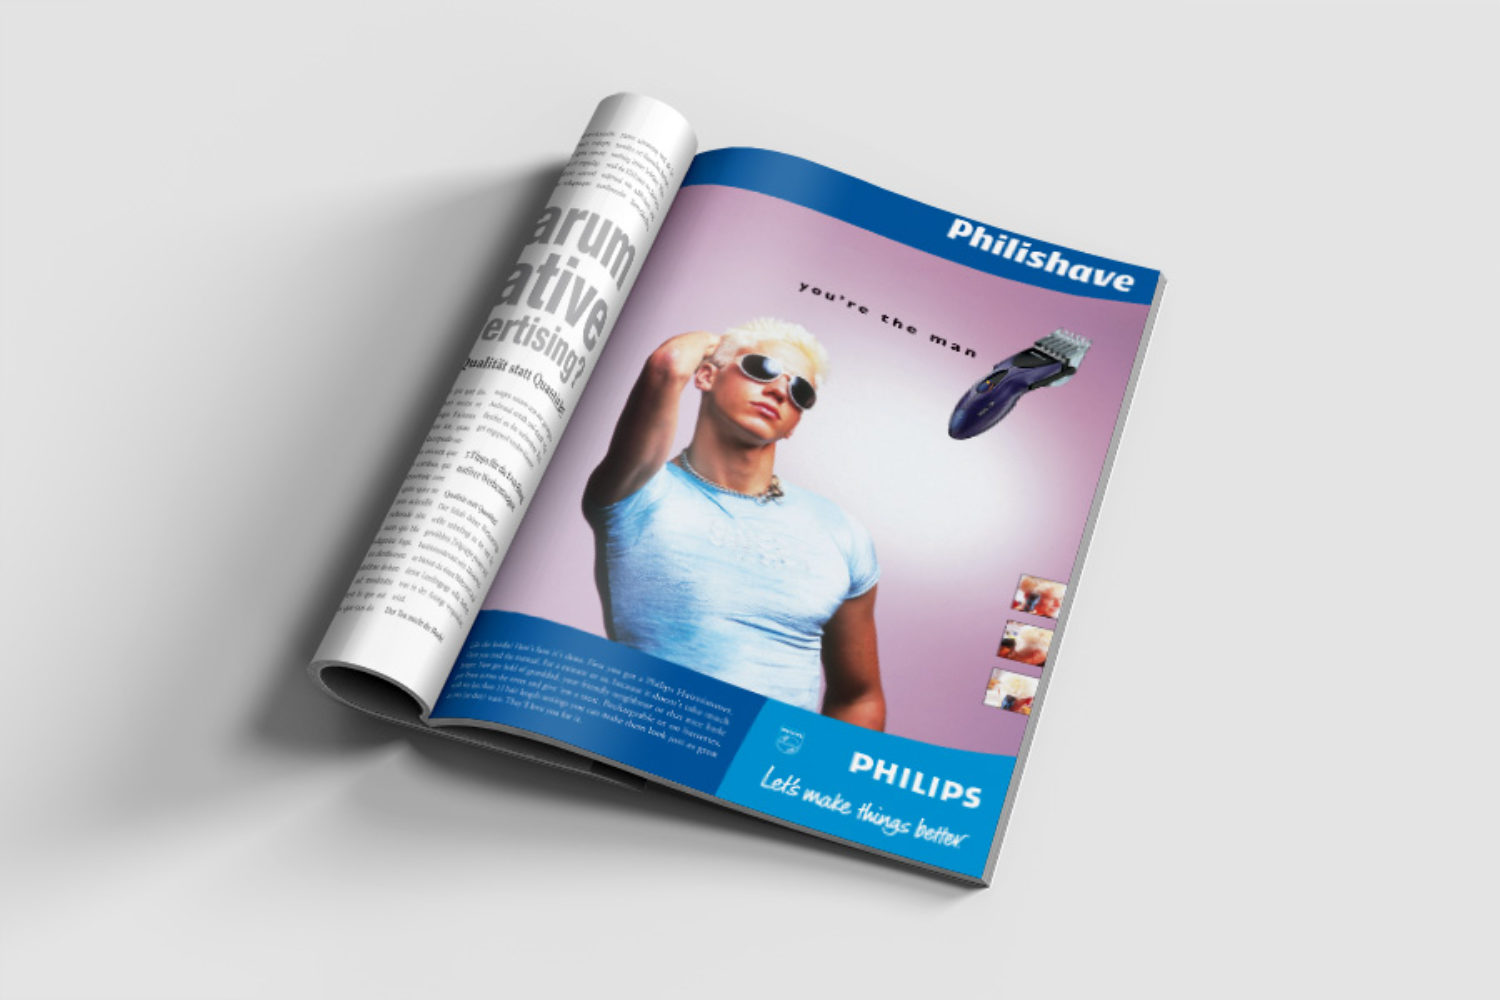 Philips Haircutter